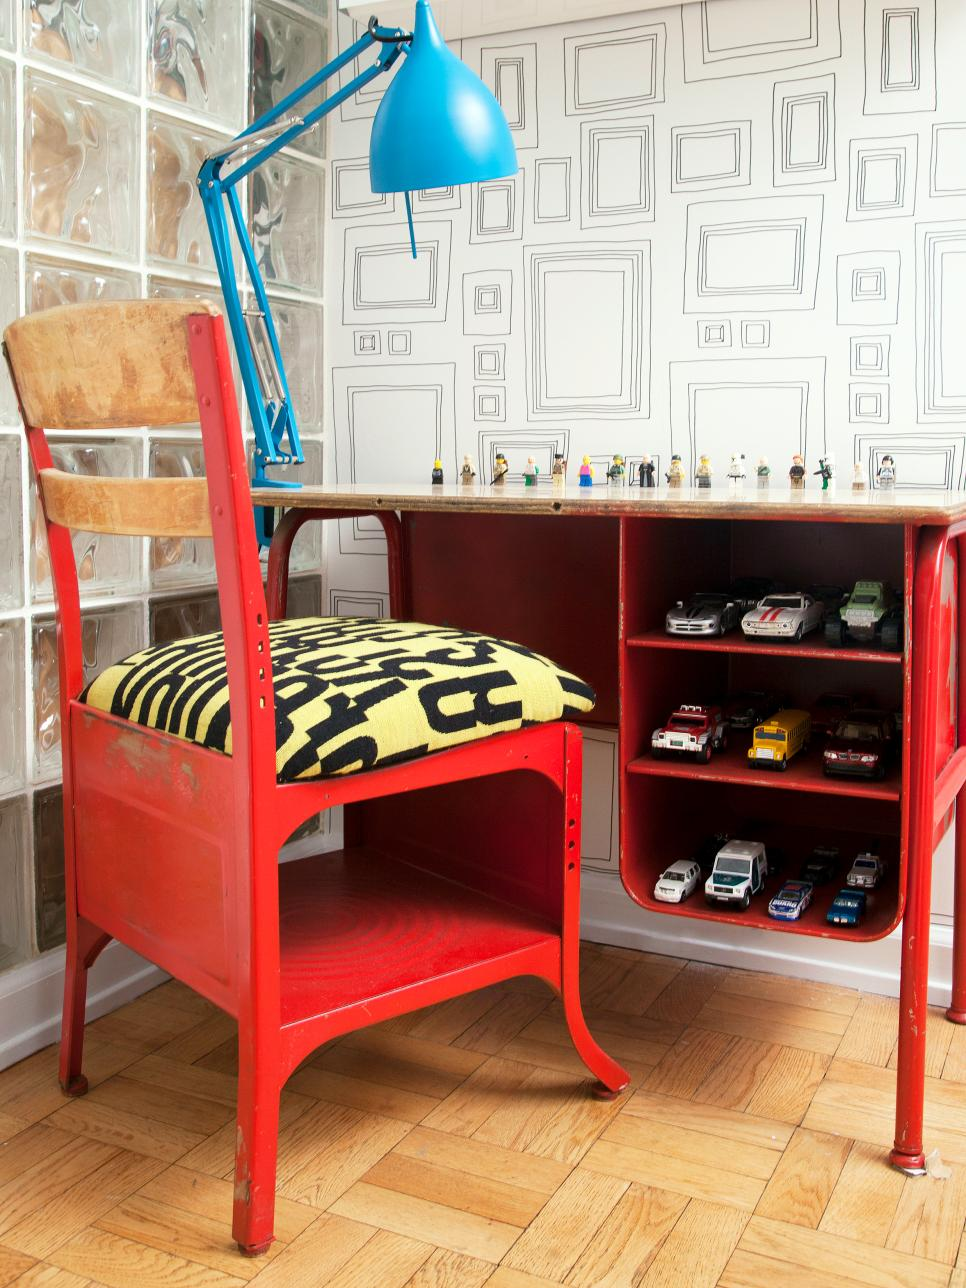 Look How These Decorative Light Ideas Change A Child's Room